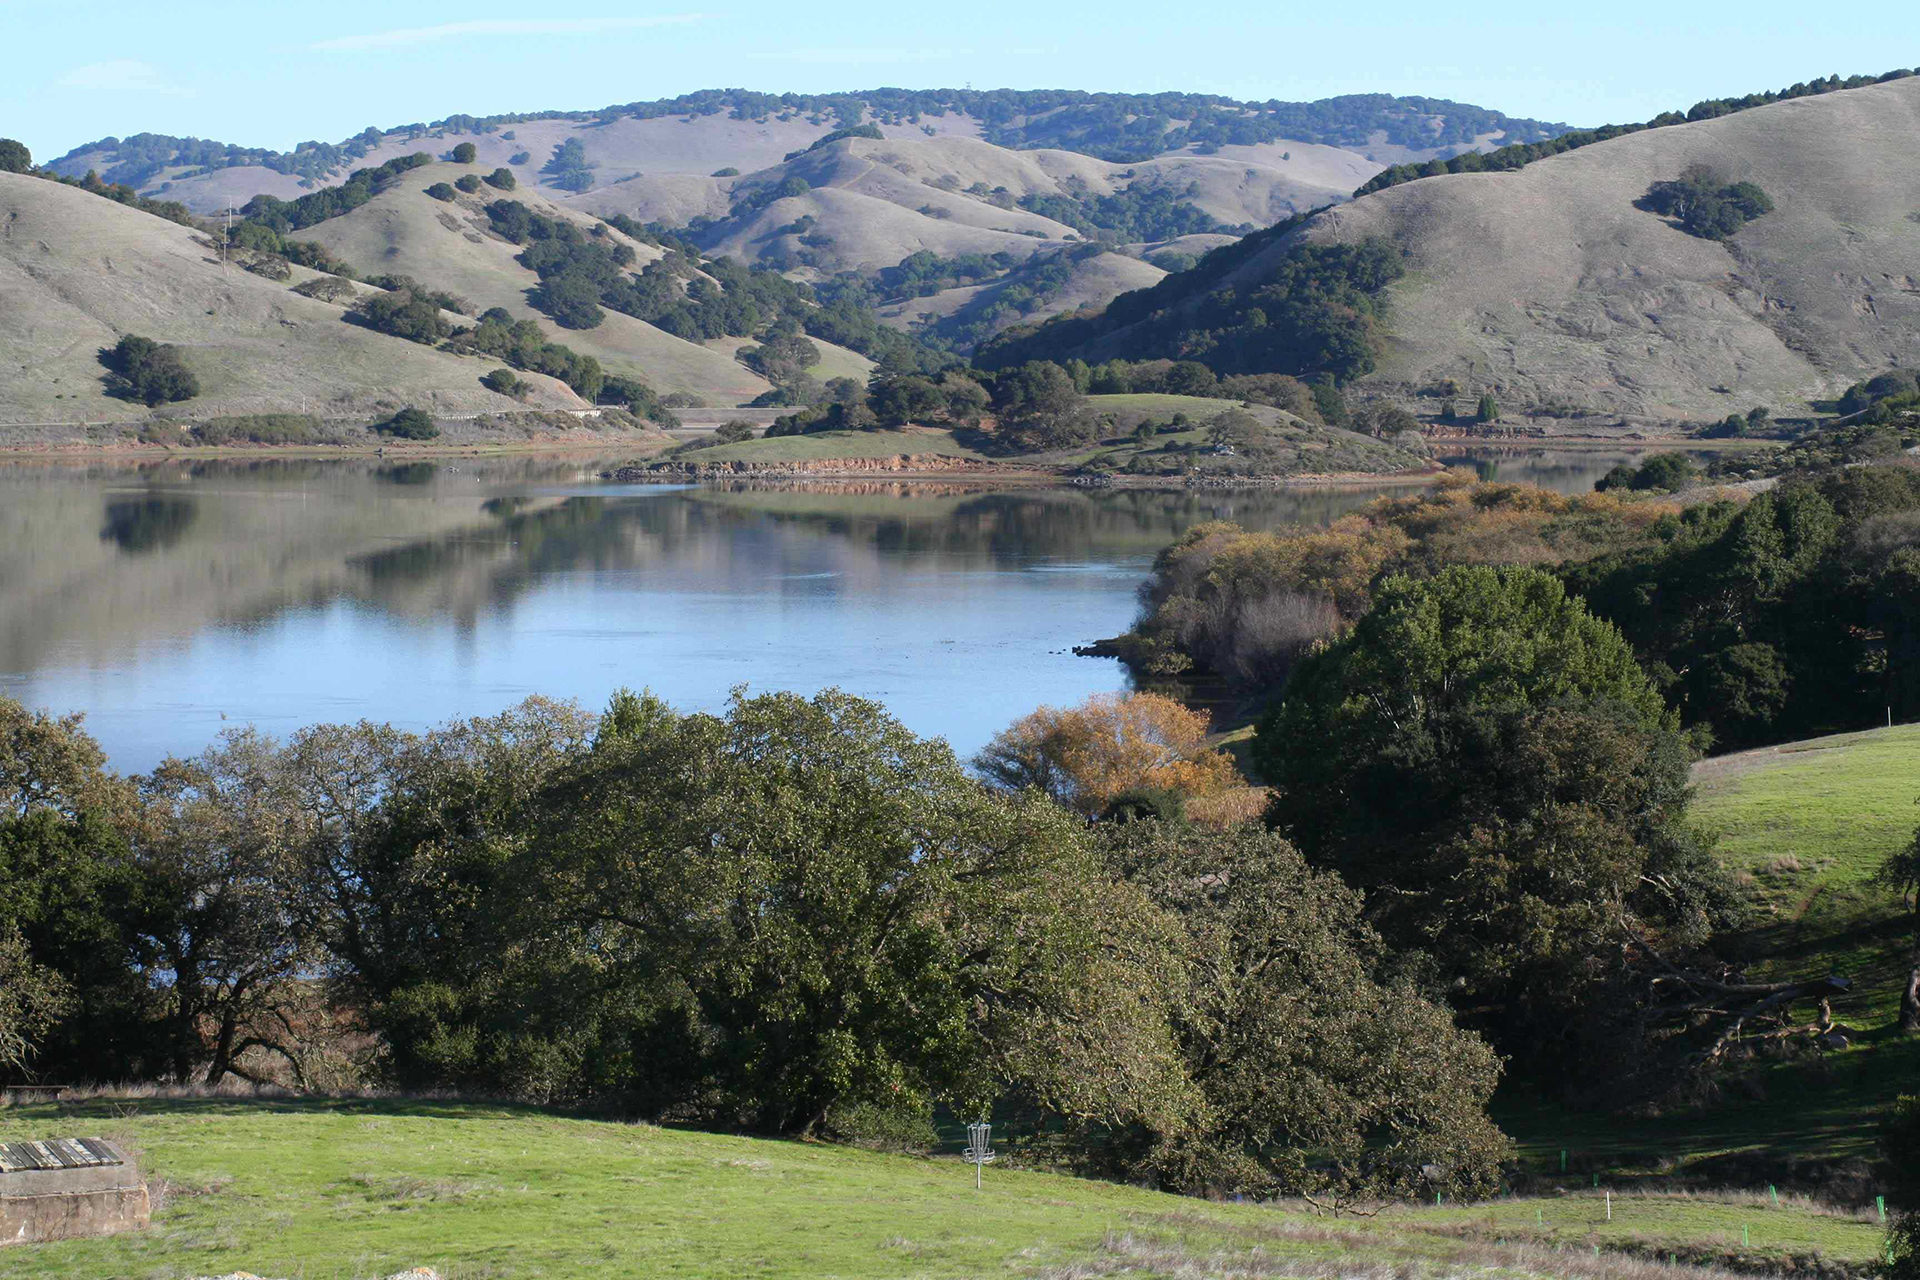 Stafford Lake - Marin County, CA